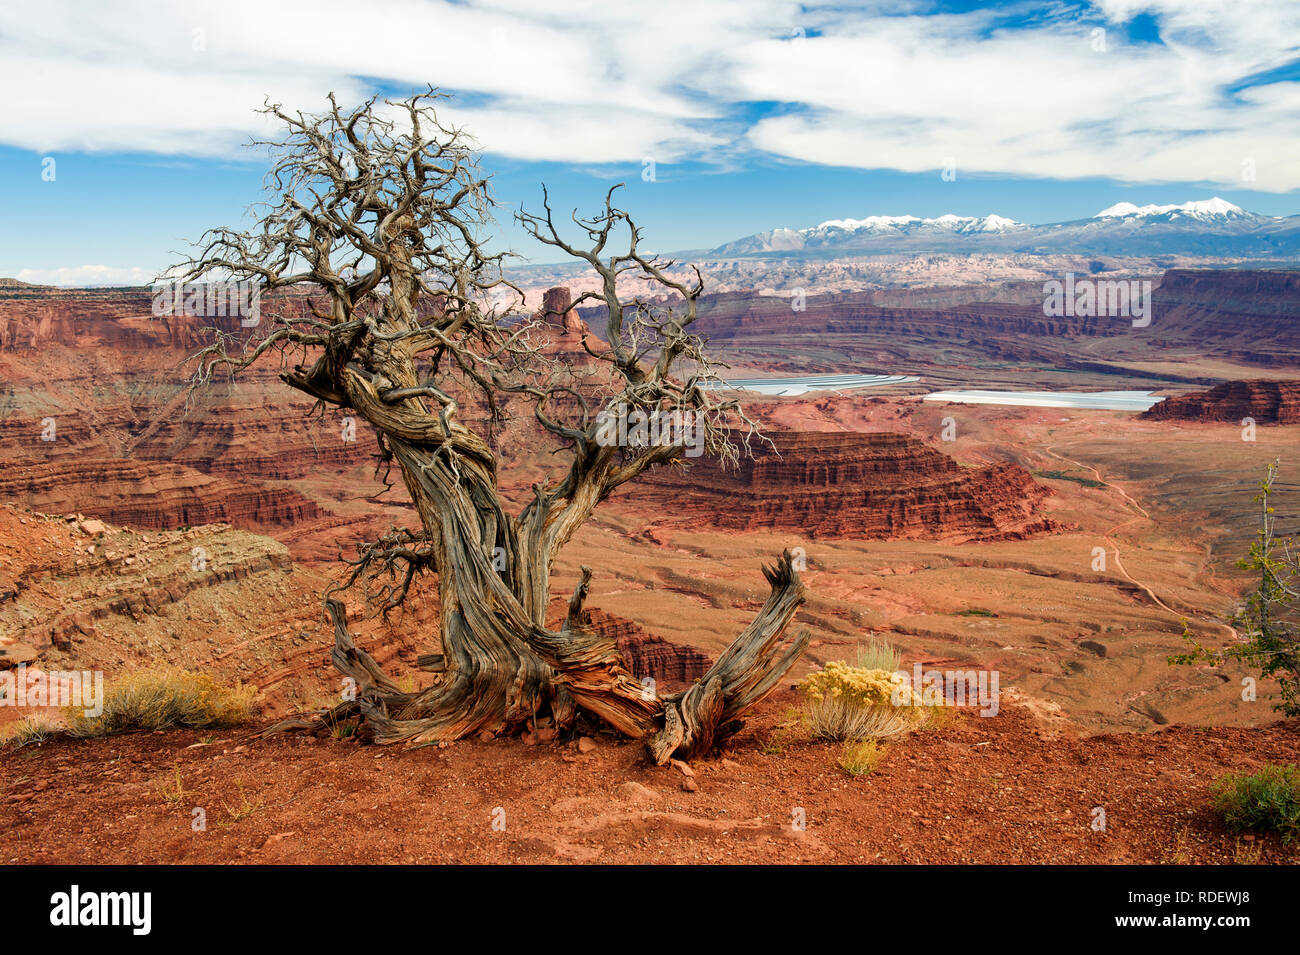 dead-juniper-tree-at-dead-horse-point-state-park-utah-usa-la-sal-mountains-in-the-background-RDEWJ8.jpg